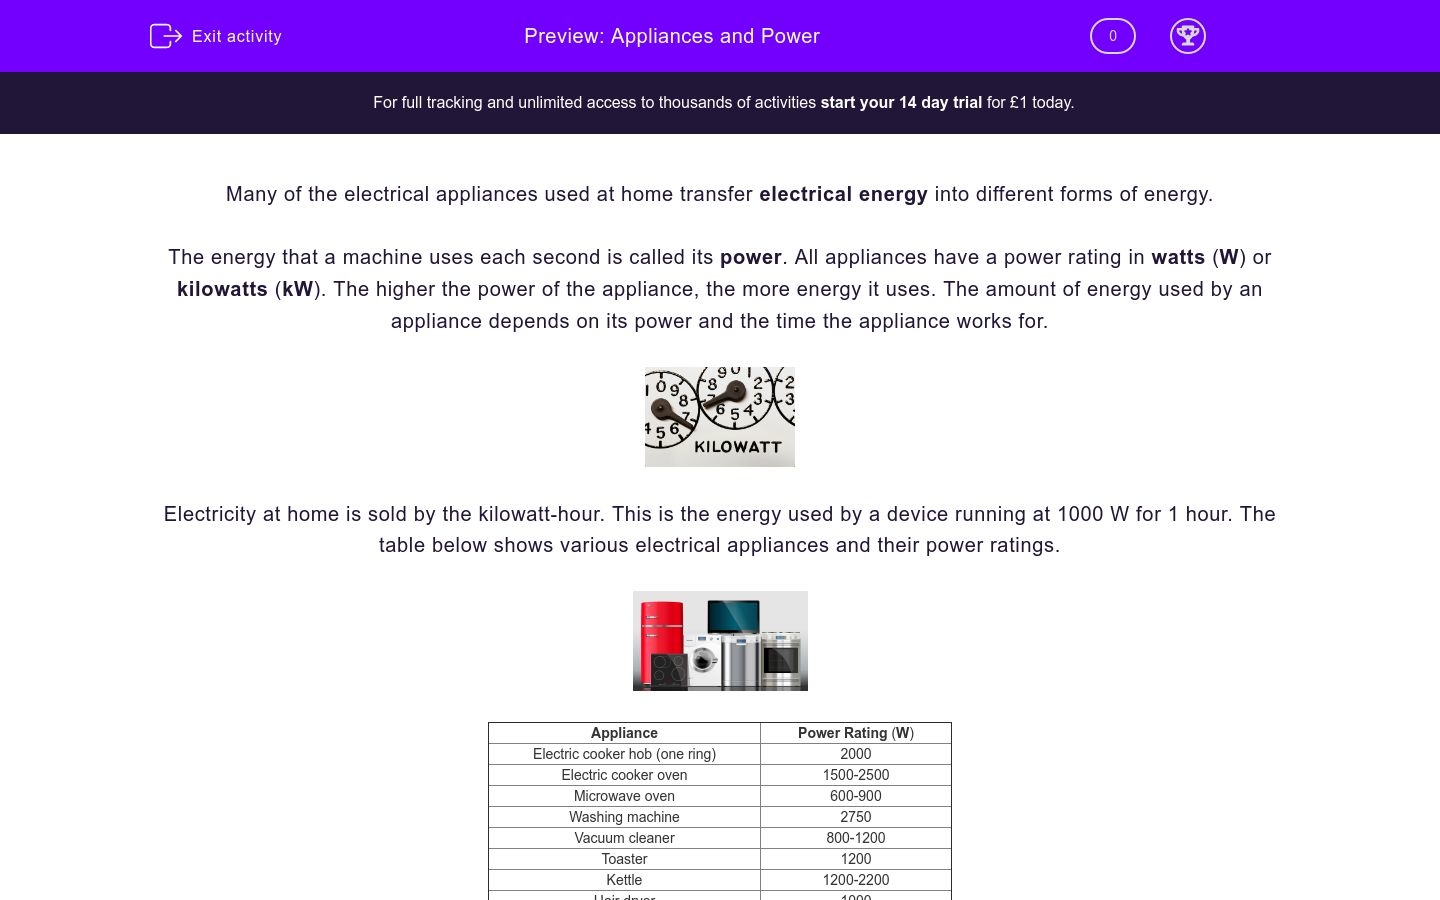 'Appliances and Power' worksheet